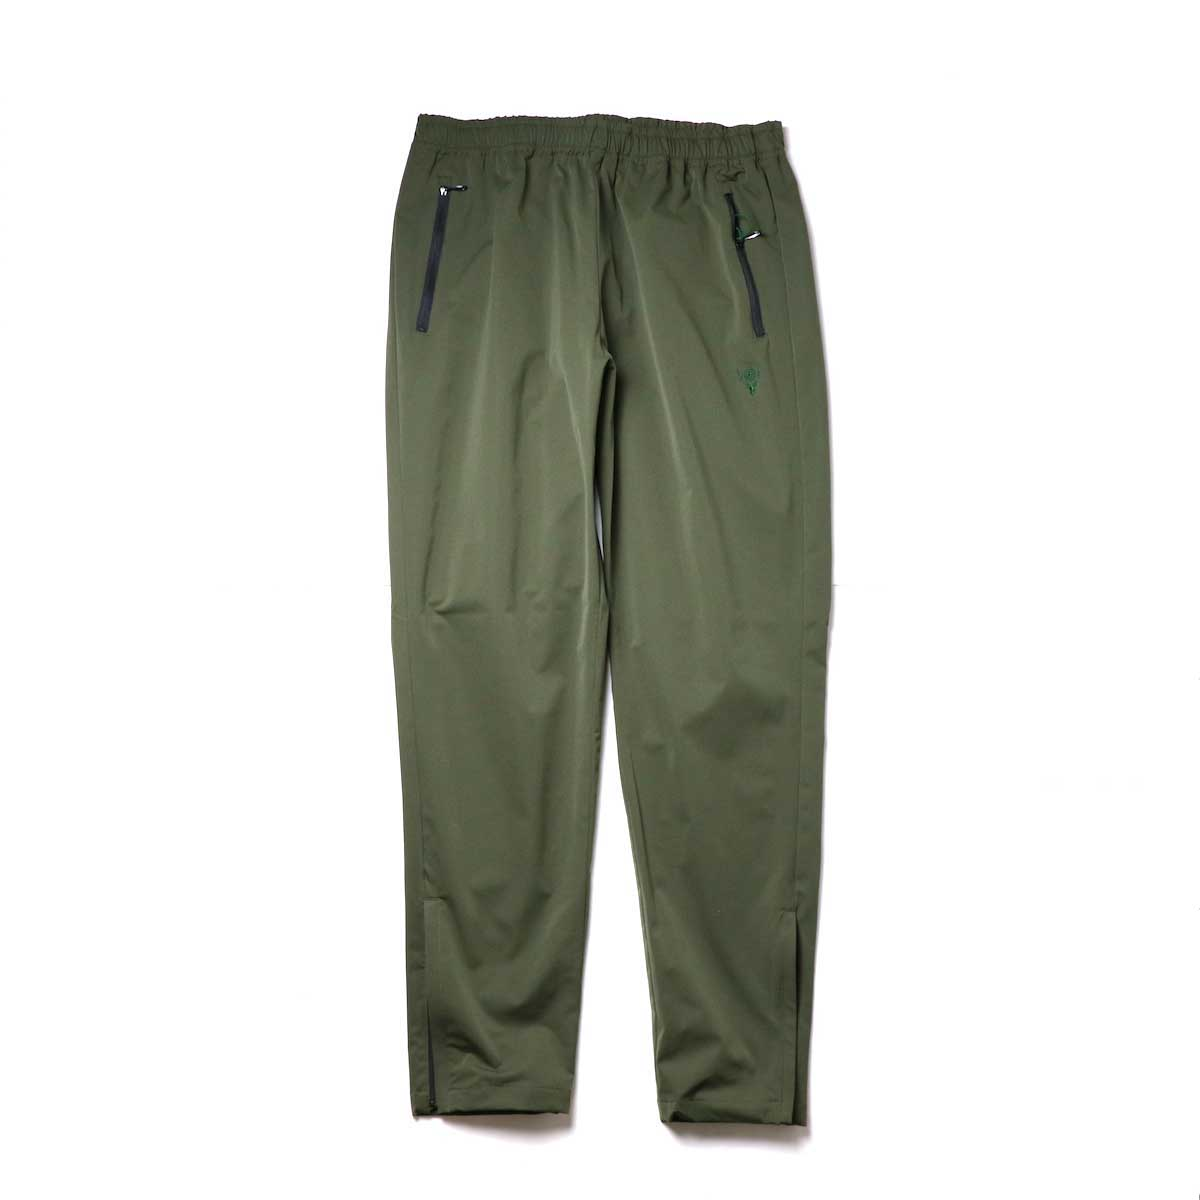 South2 West8 / Boulder Pant -Poly Stretch Twill (Green)正面